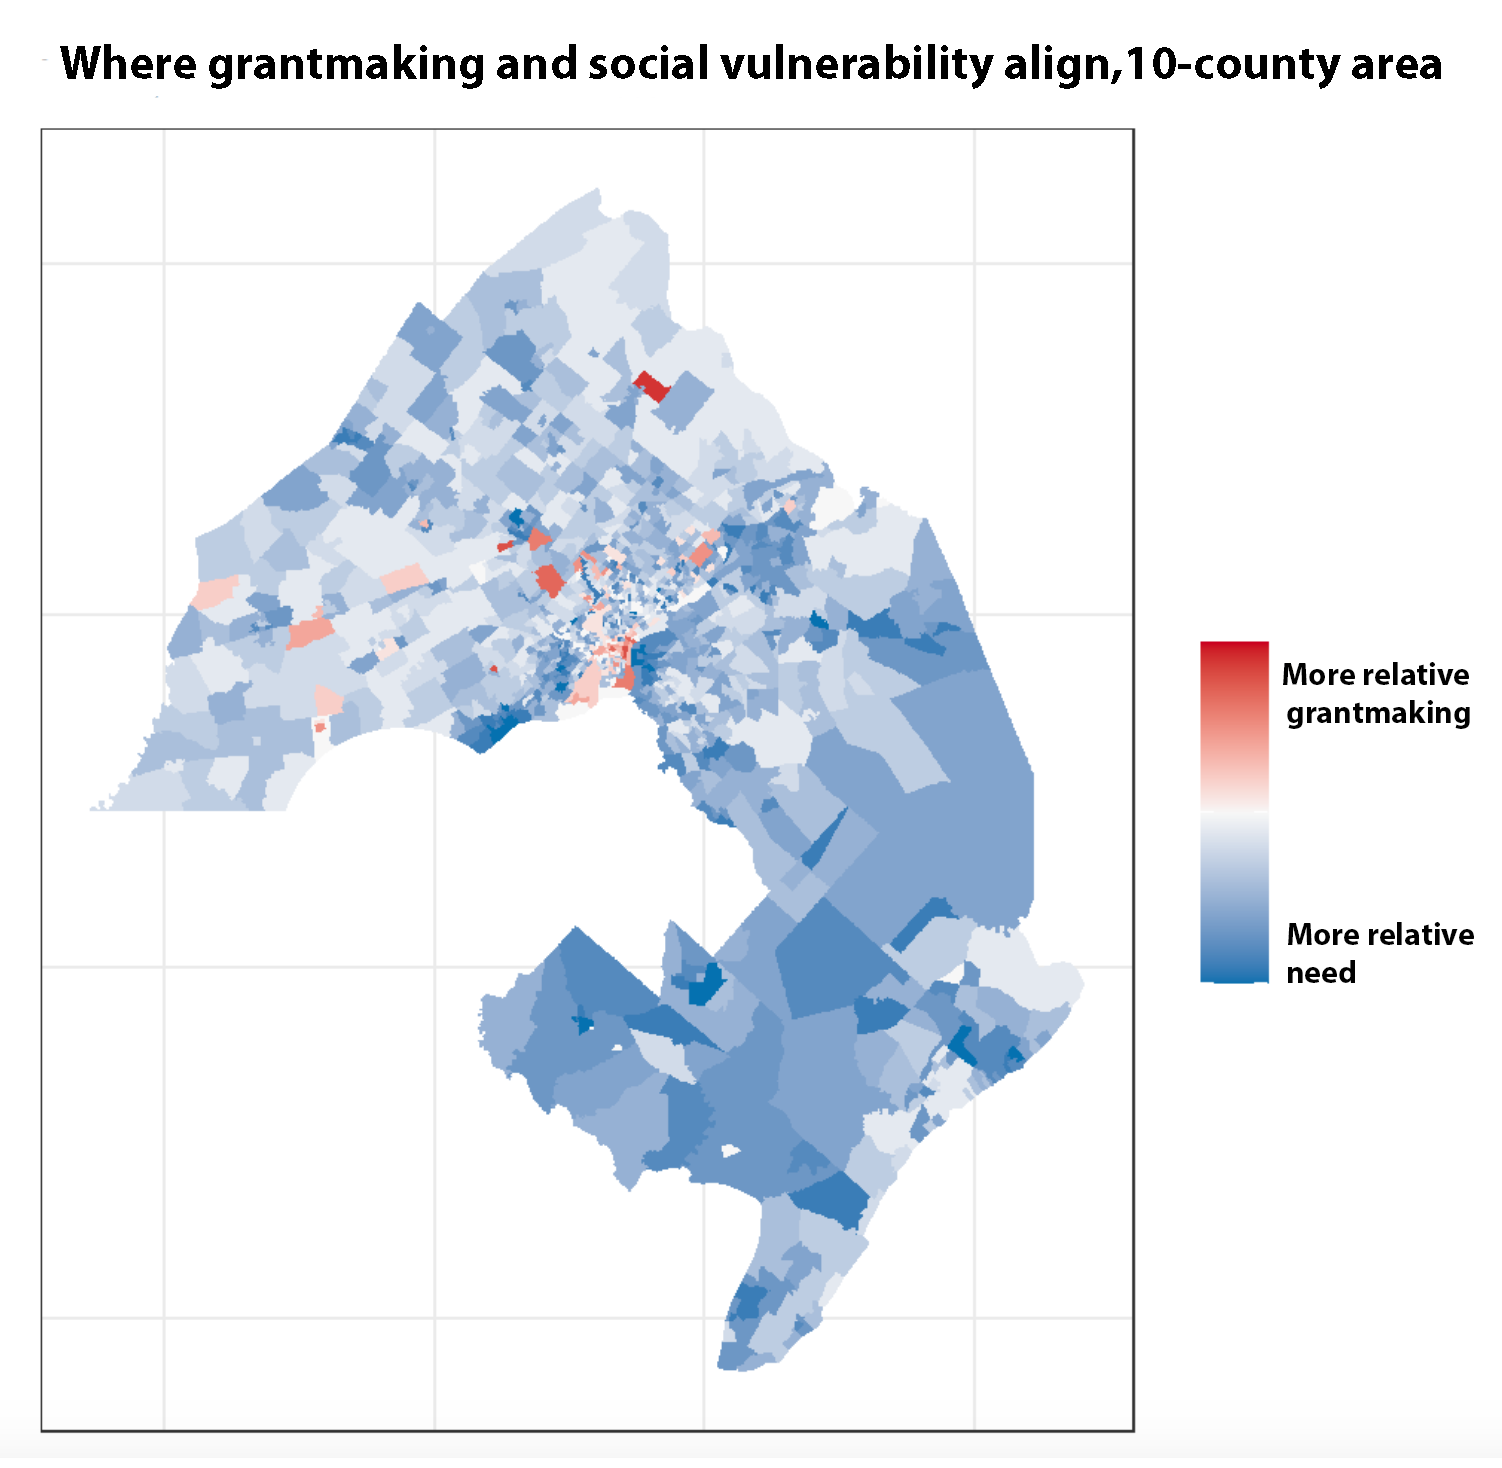 Where grantmaking and social vulnerability align, 10-county area